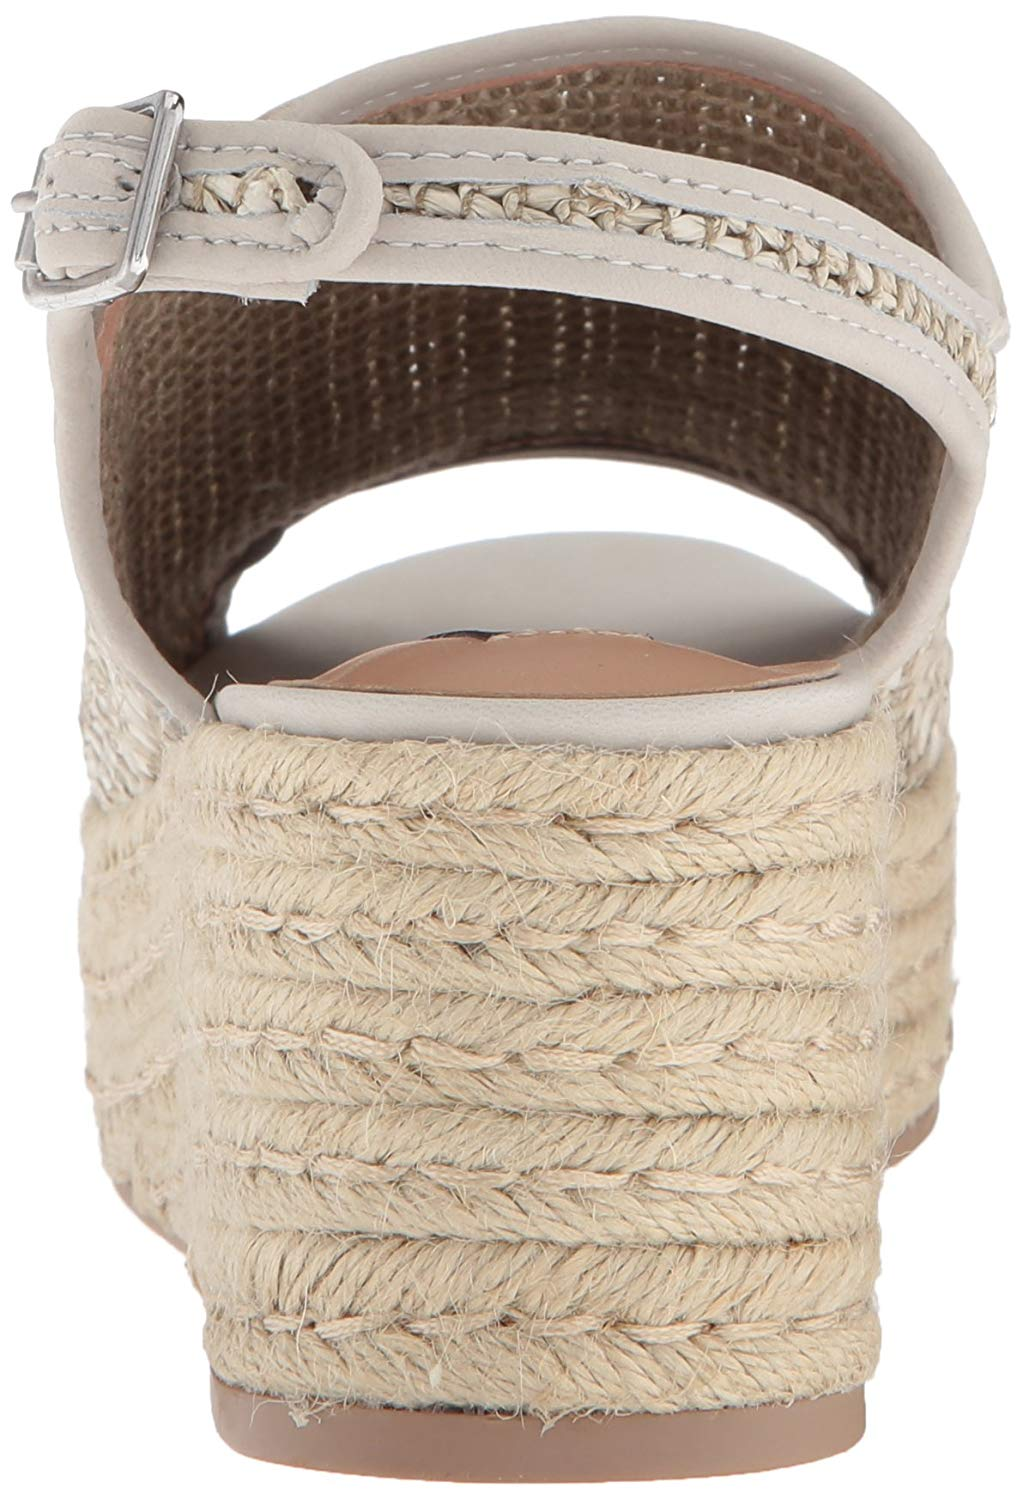 99d5b778e57 Details about STEVEN by Steve Madden Women's Courage Wedge Sandal, Taupe  Multi, Size 10.0 4w0j